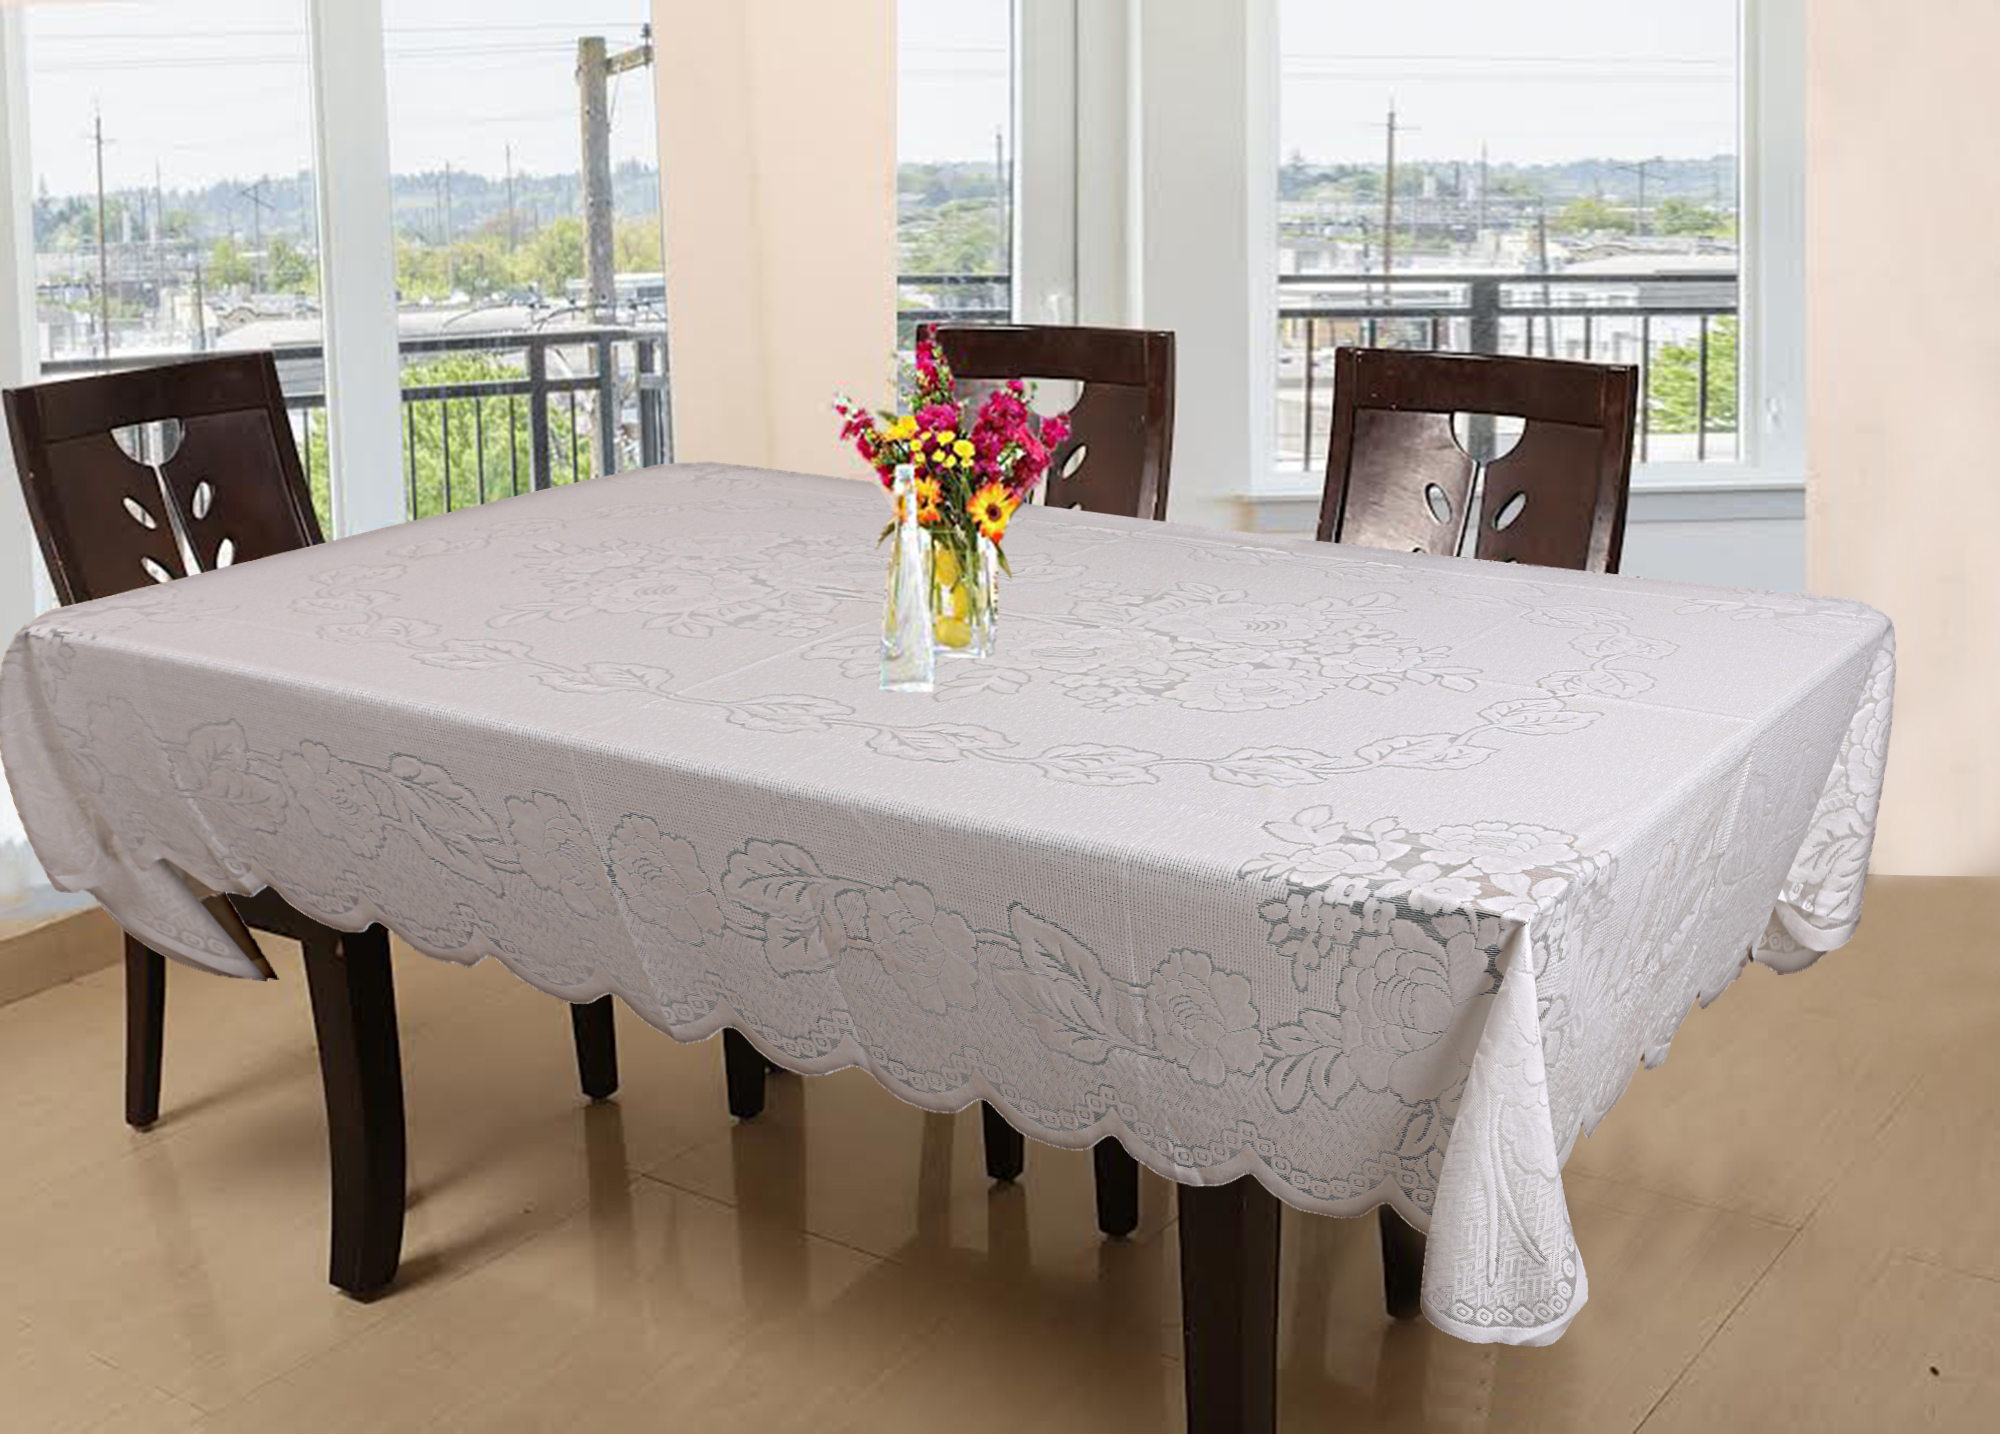 Kuber Industries Floral Design Cotton 6 Seater Dining Table Cover 60x90 Inches (White)-CTKTC1262